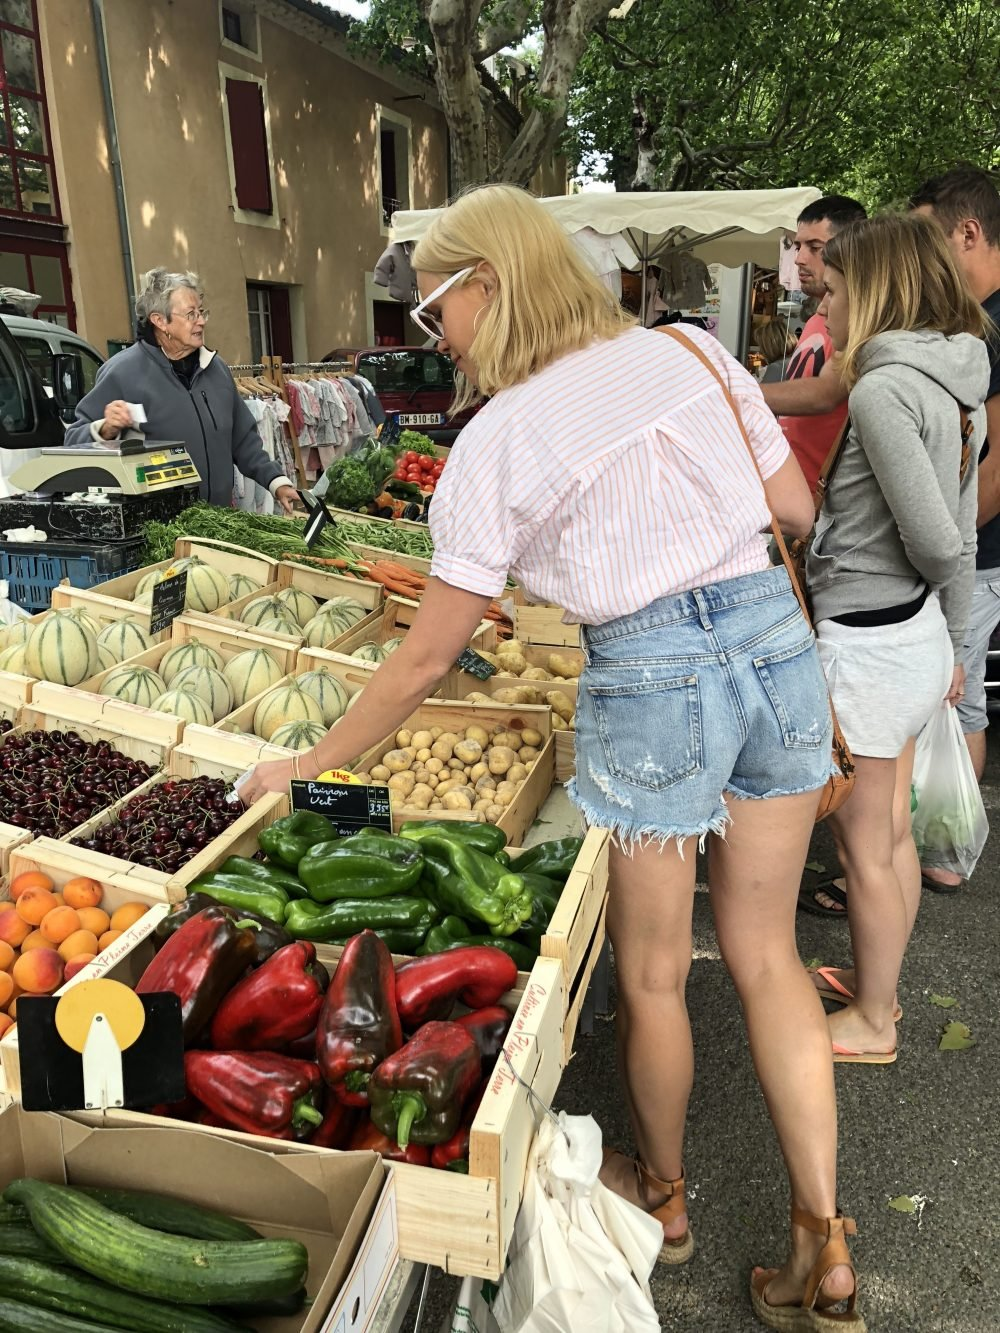 monique at the farmer's market